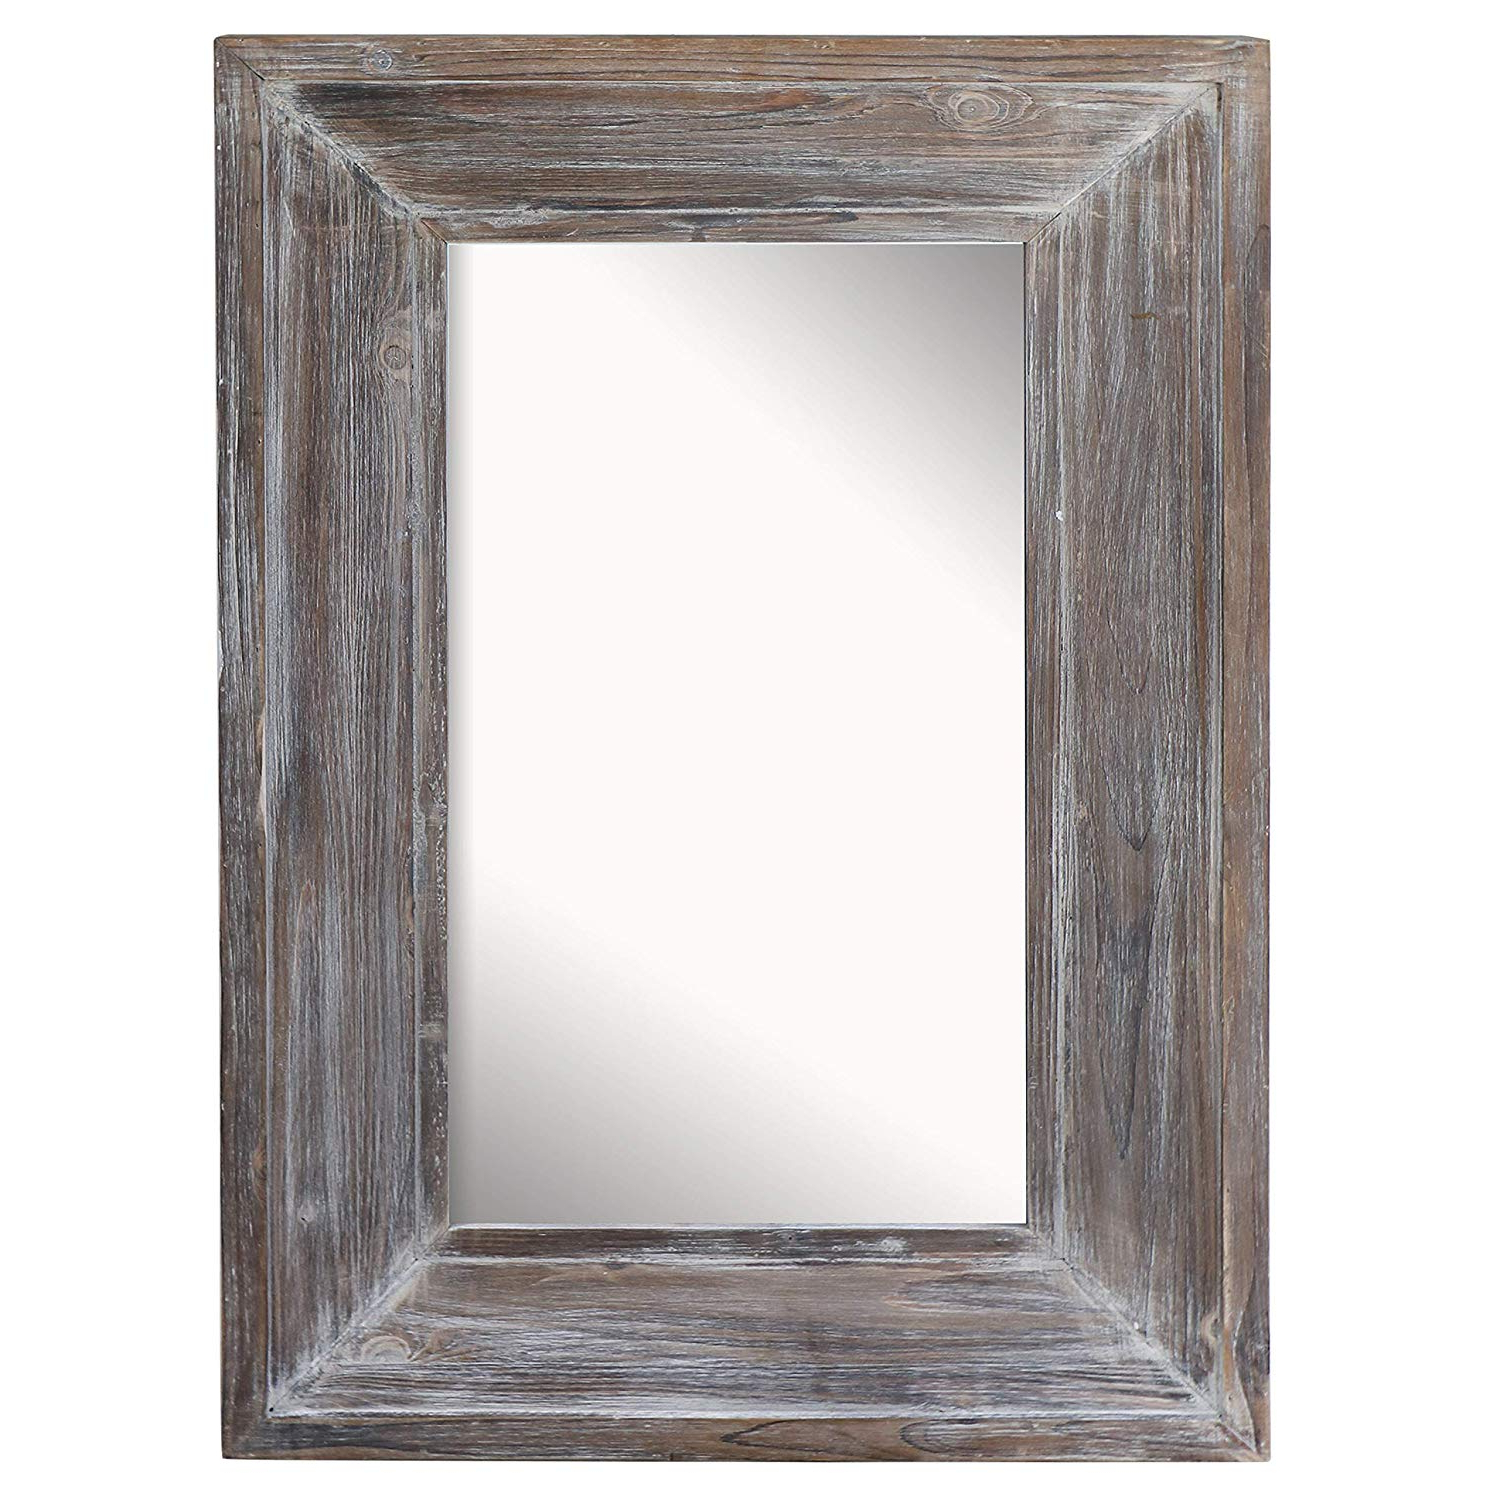 """Barnyard Designs Decorative Wall Mirror Rustic Distressed Natural Wood Frame Vertical Hanging Mirror Wall Decor 36"""" X 24"""" Throughout Well Liked Rectangle Antique Galvanized Metal Accent Mirrors (View 9 of 20)"""